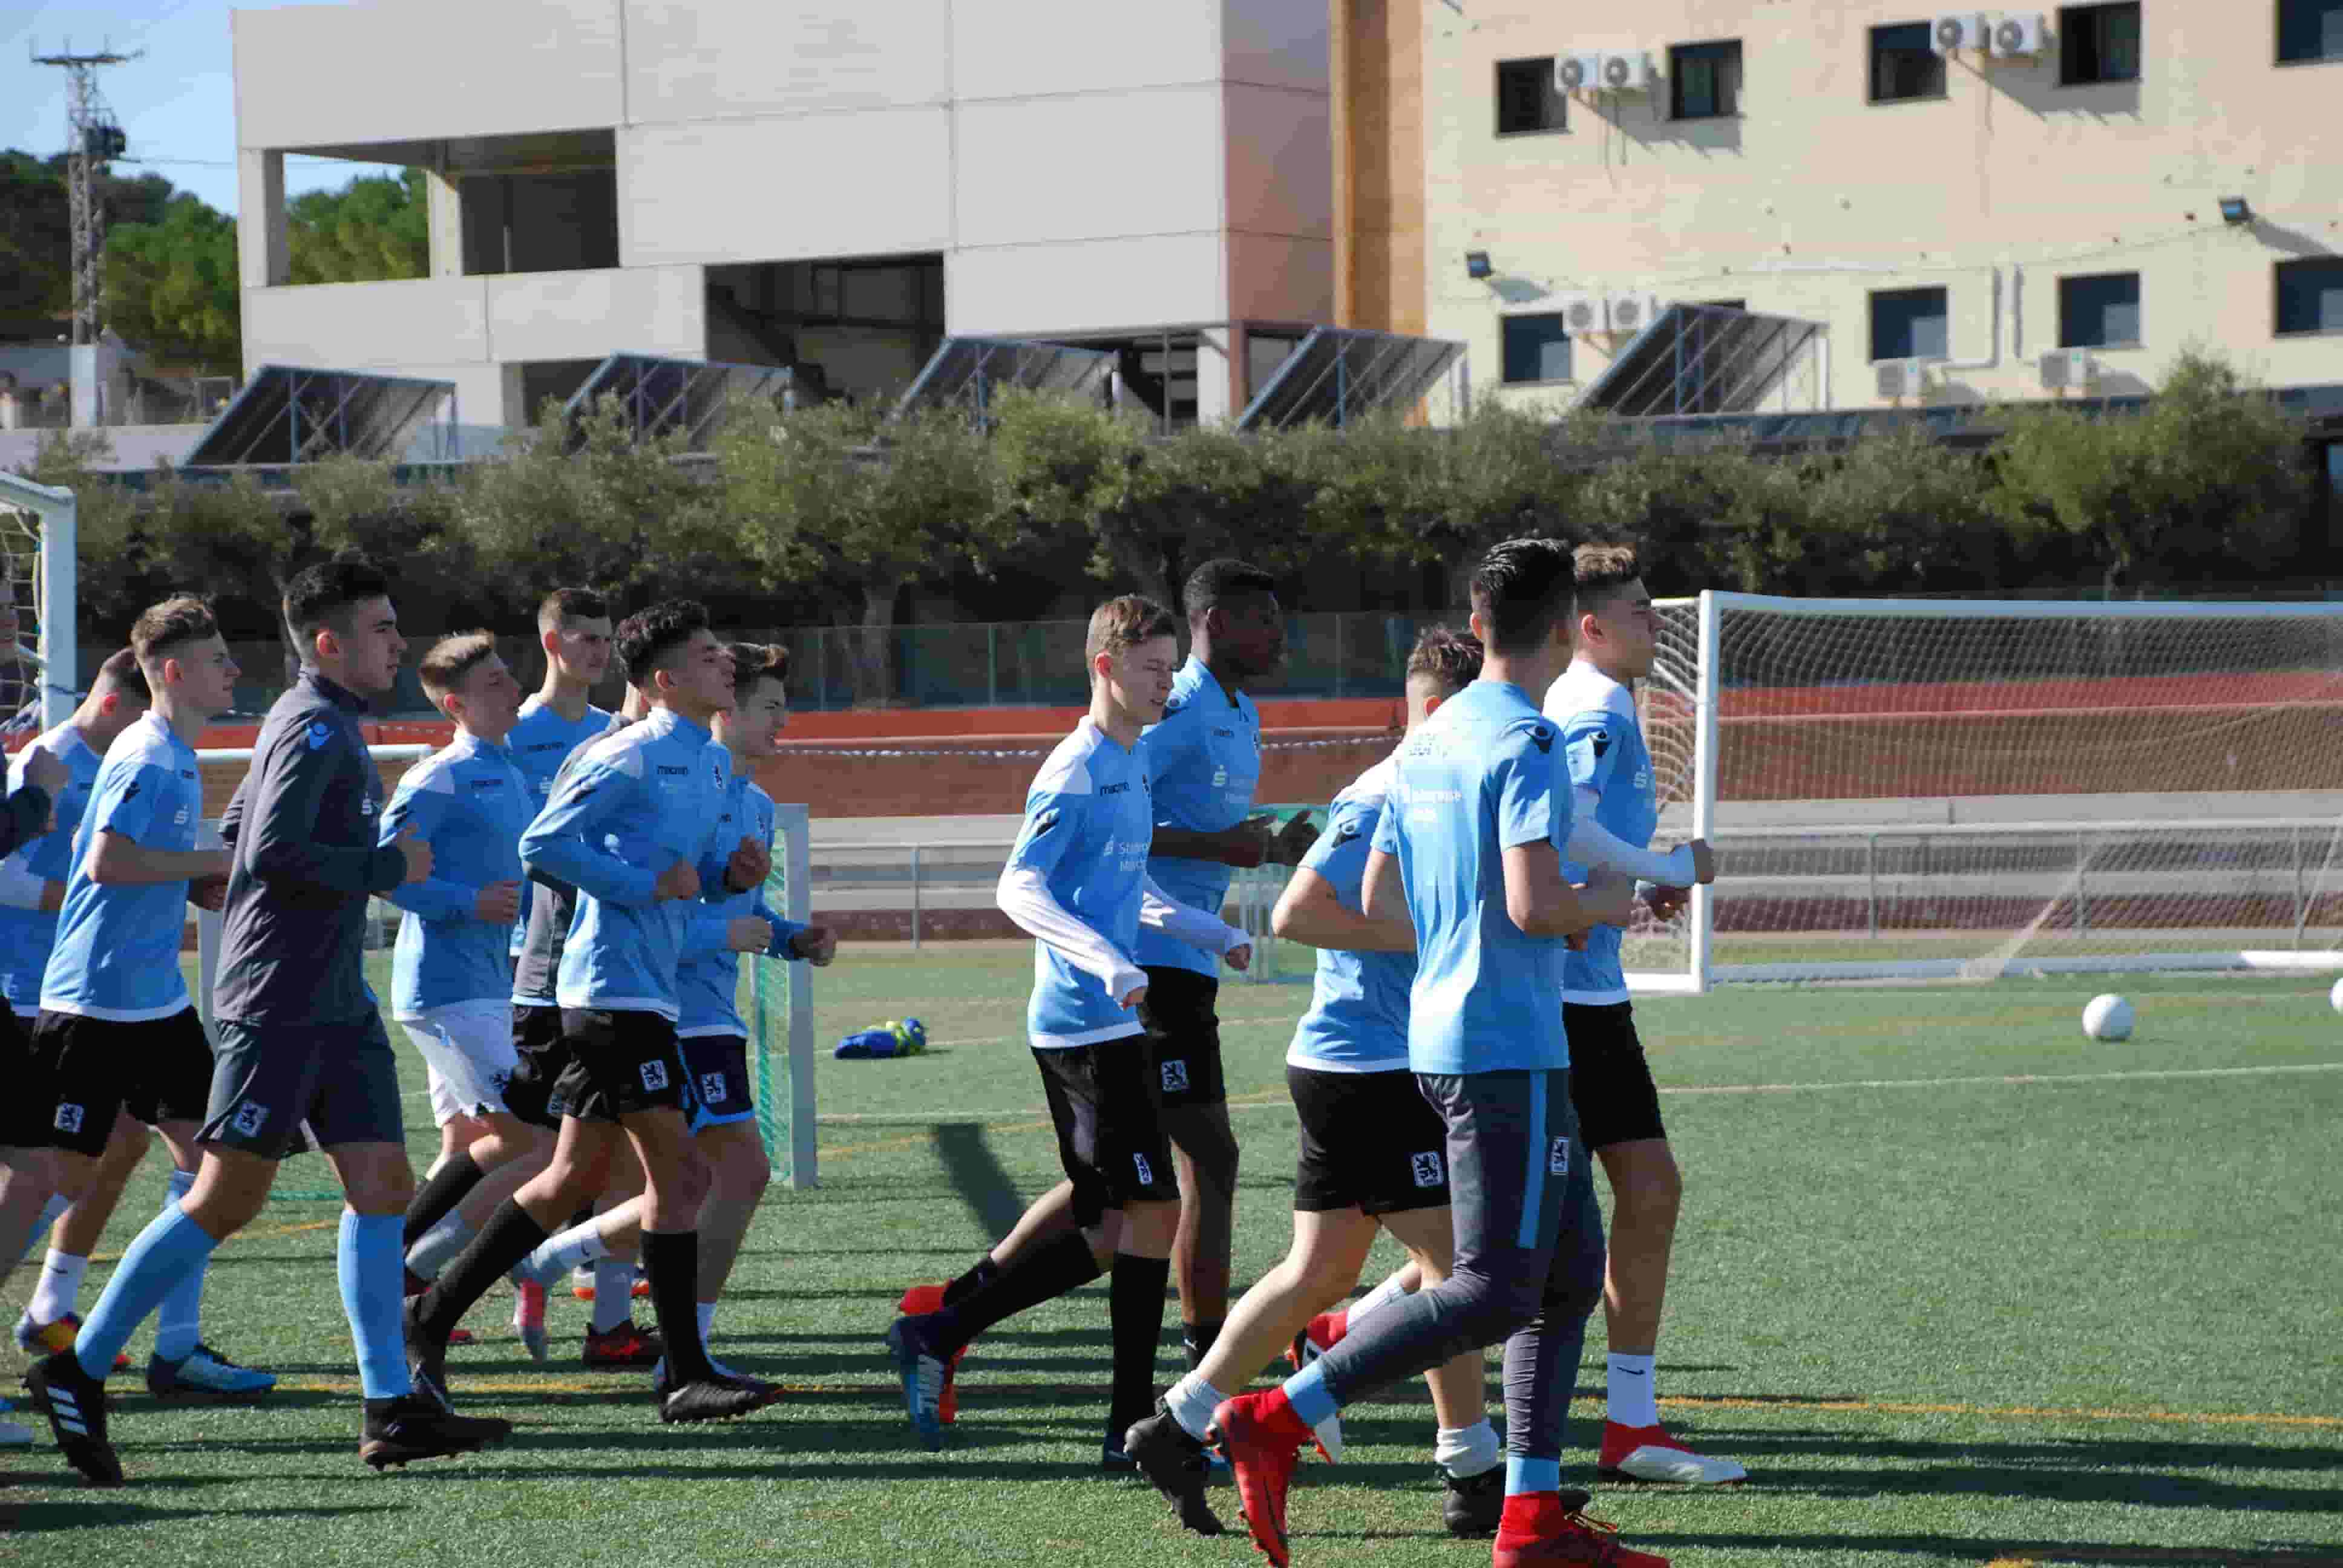 stage in spain 1860 Munich in SIA football academy